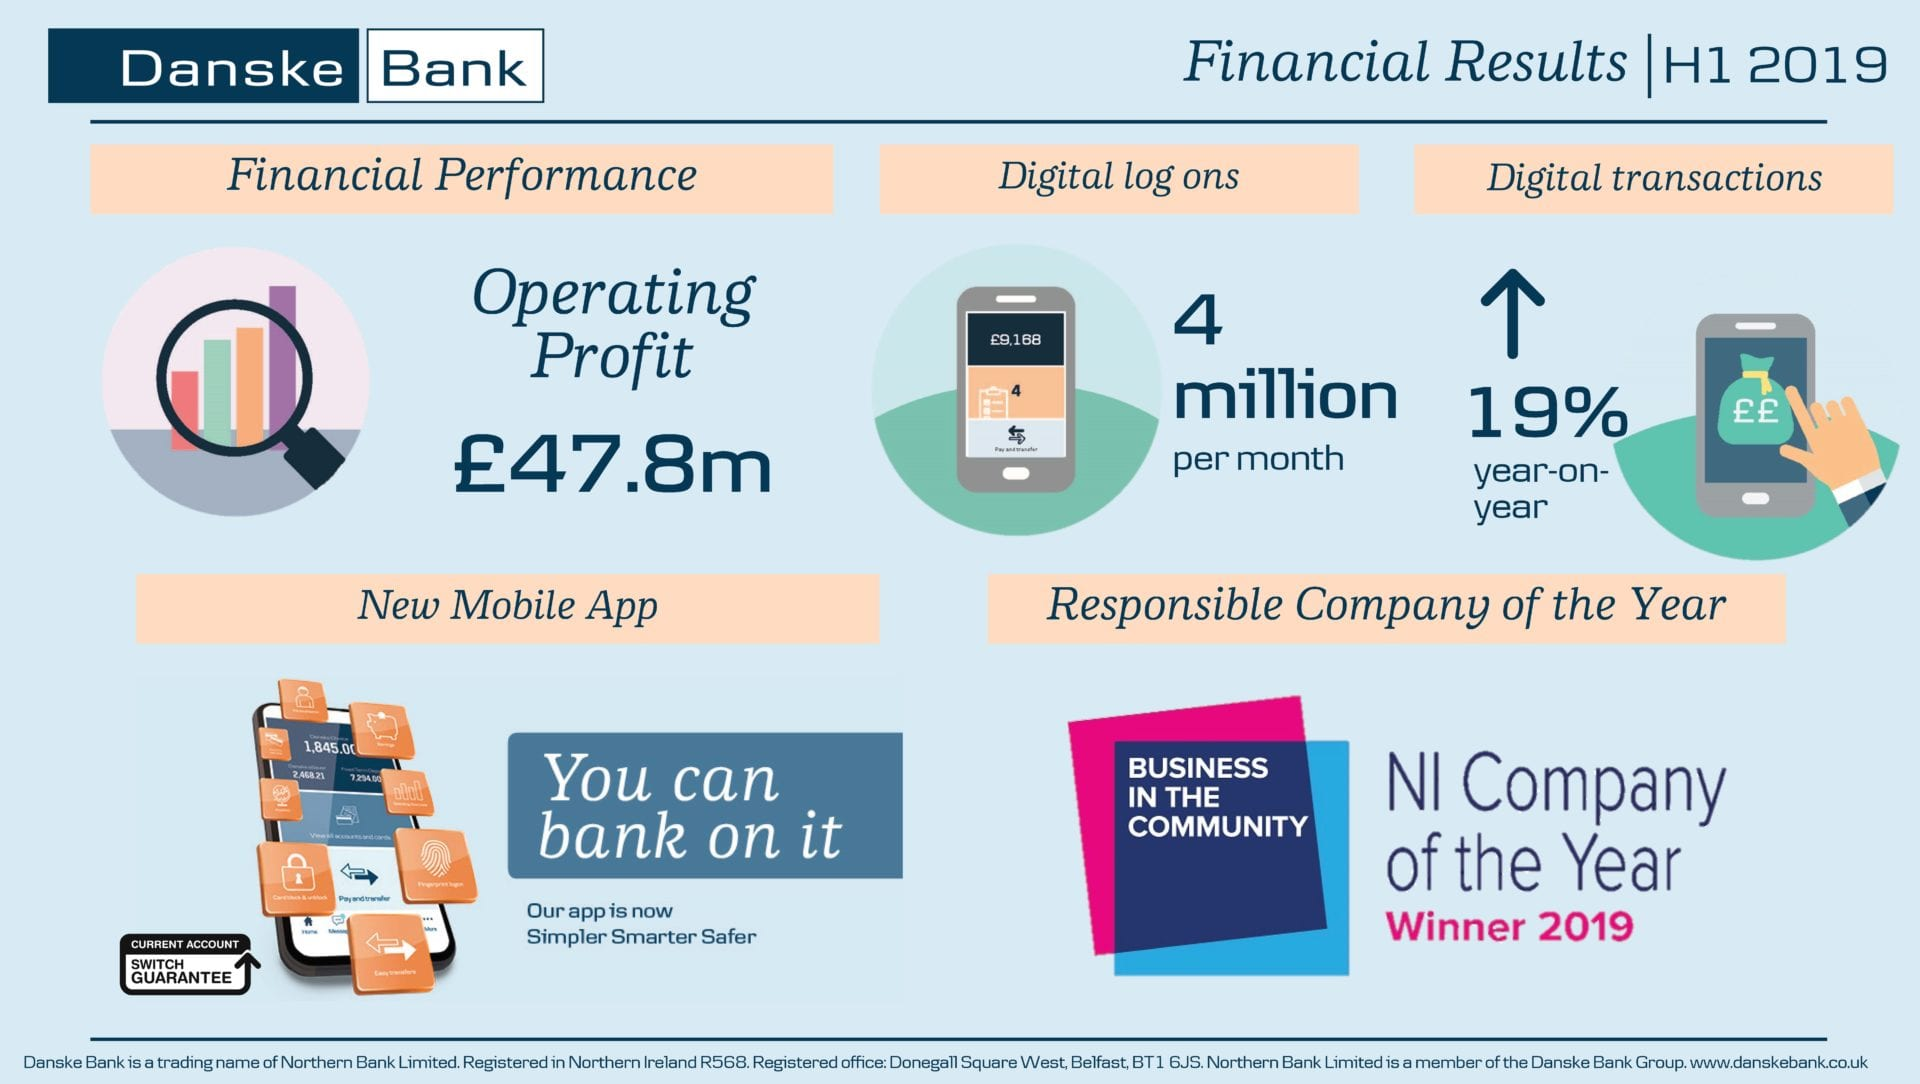 Danske Bank in Northern Ireland reports a profit before impairments of £47.8m for the first half of 2019.